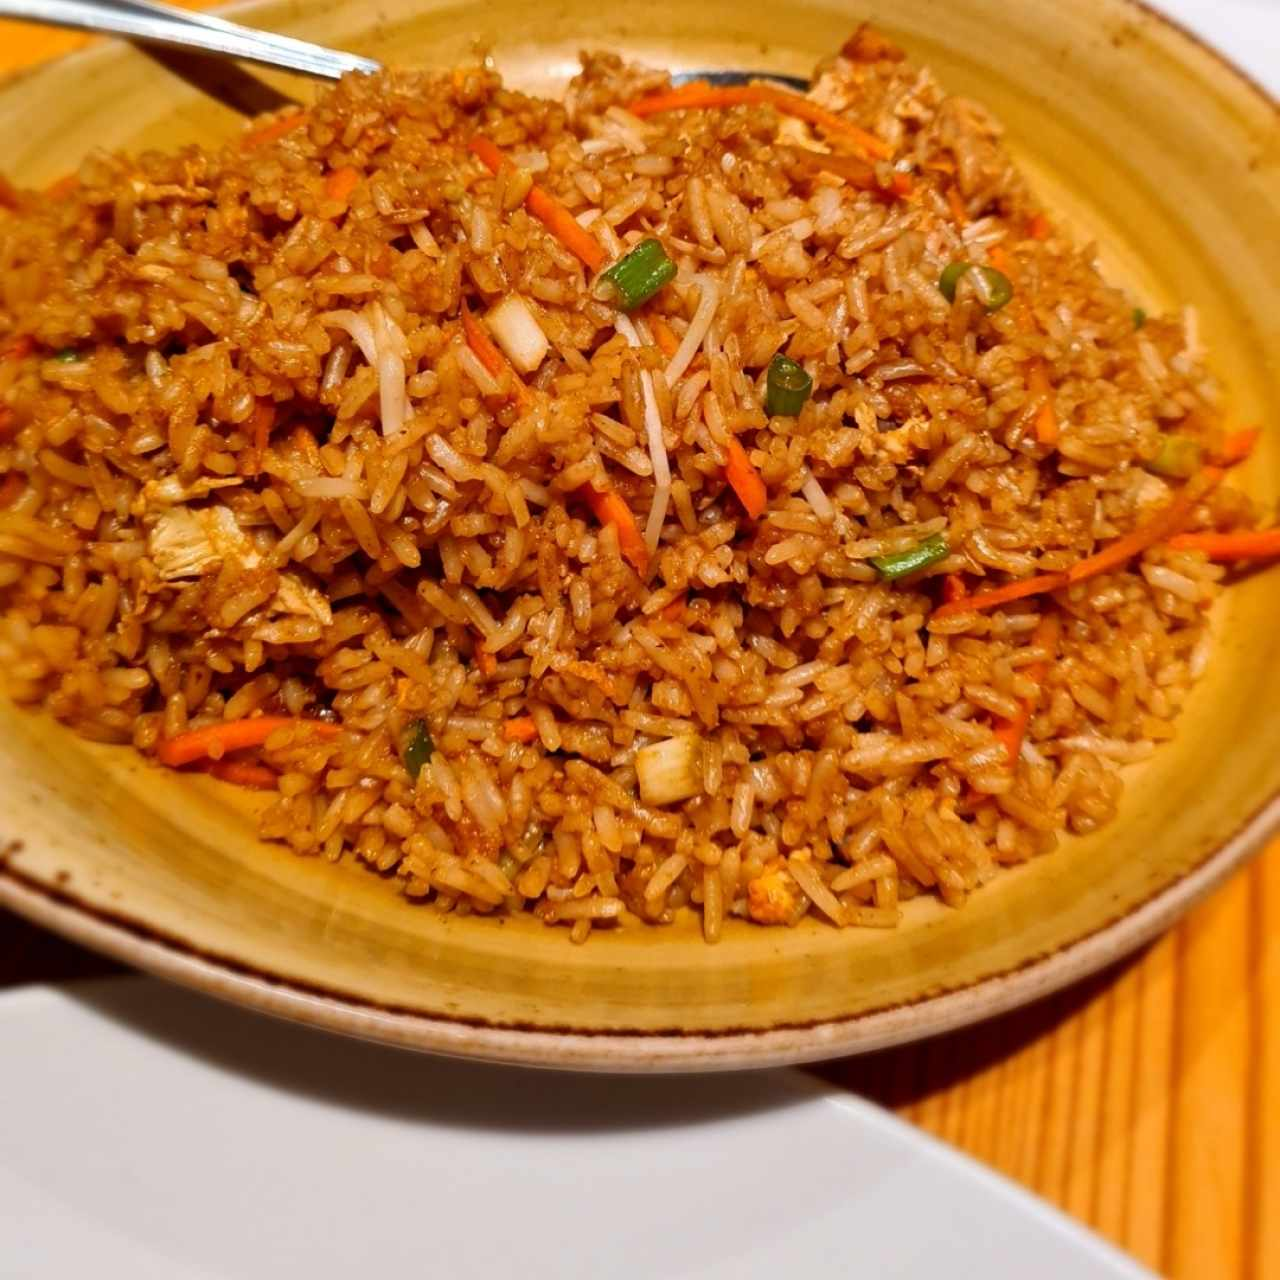 P.F. Chang's Fried Rice